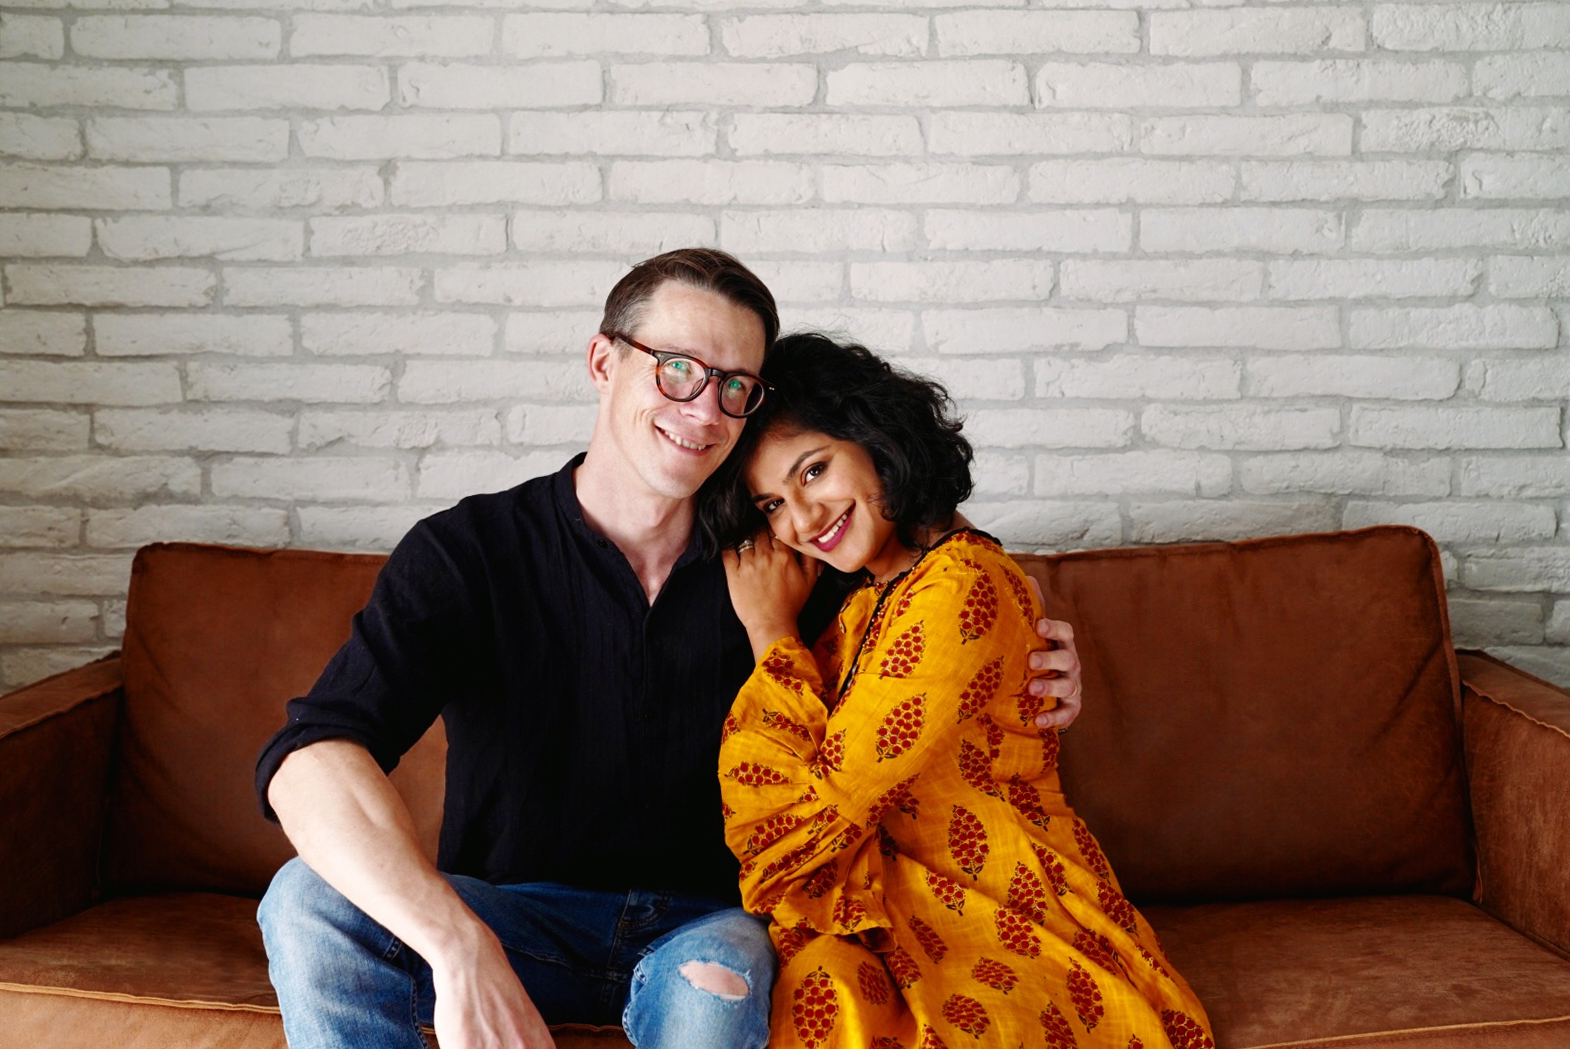 Ben and Sirjana from Tinted Photography sitting together on a brown couch in front of a white brick wall.